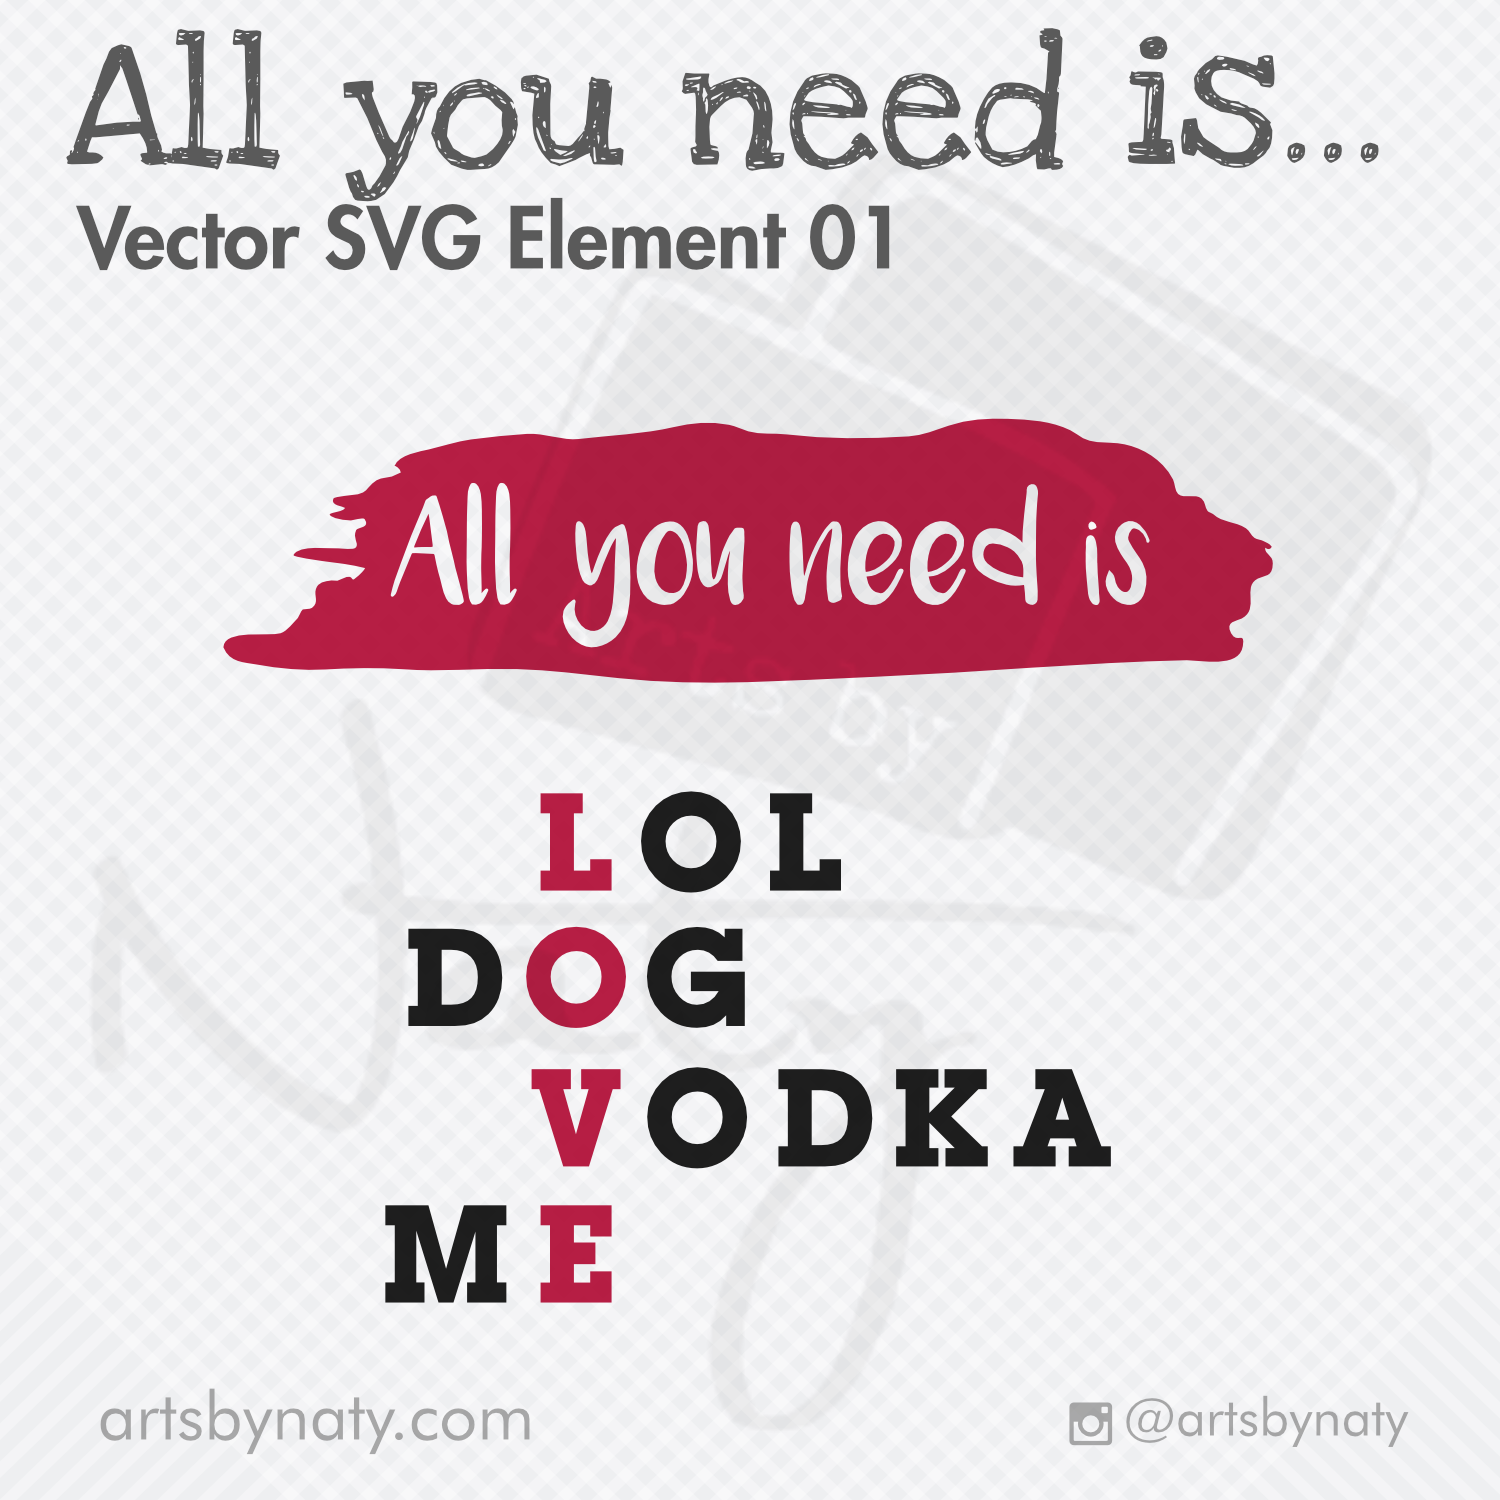 Download All You Need Is Love SVG Funny Quote. - Arts By Naty